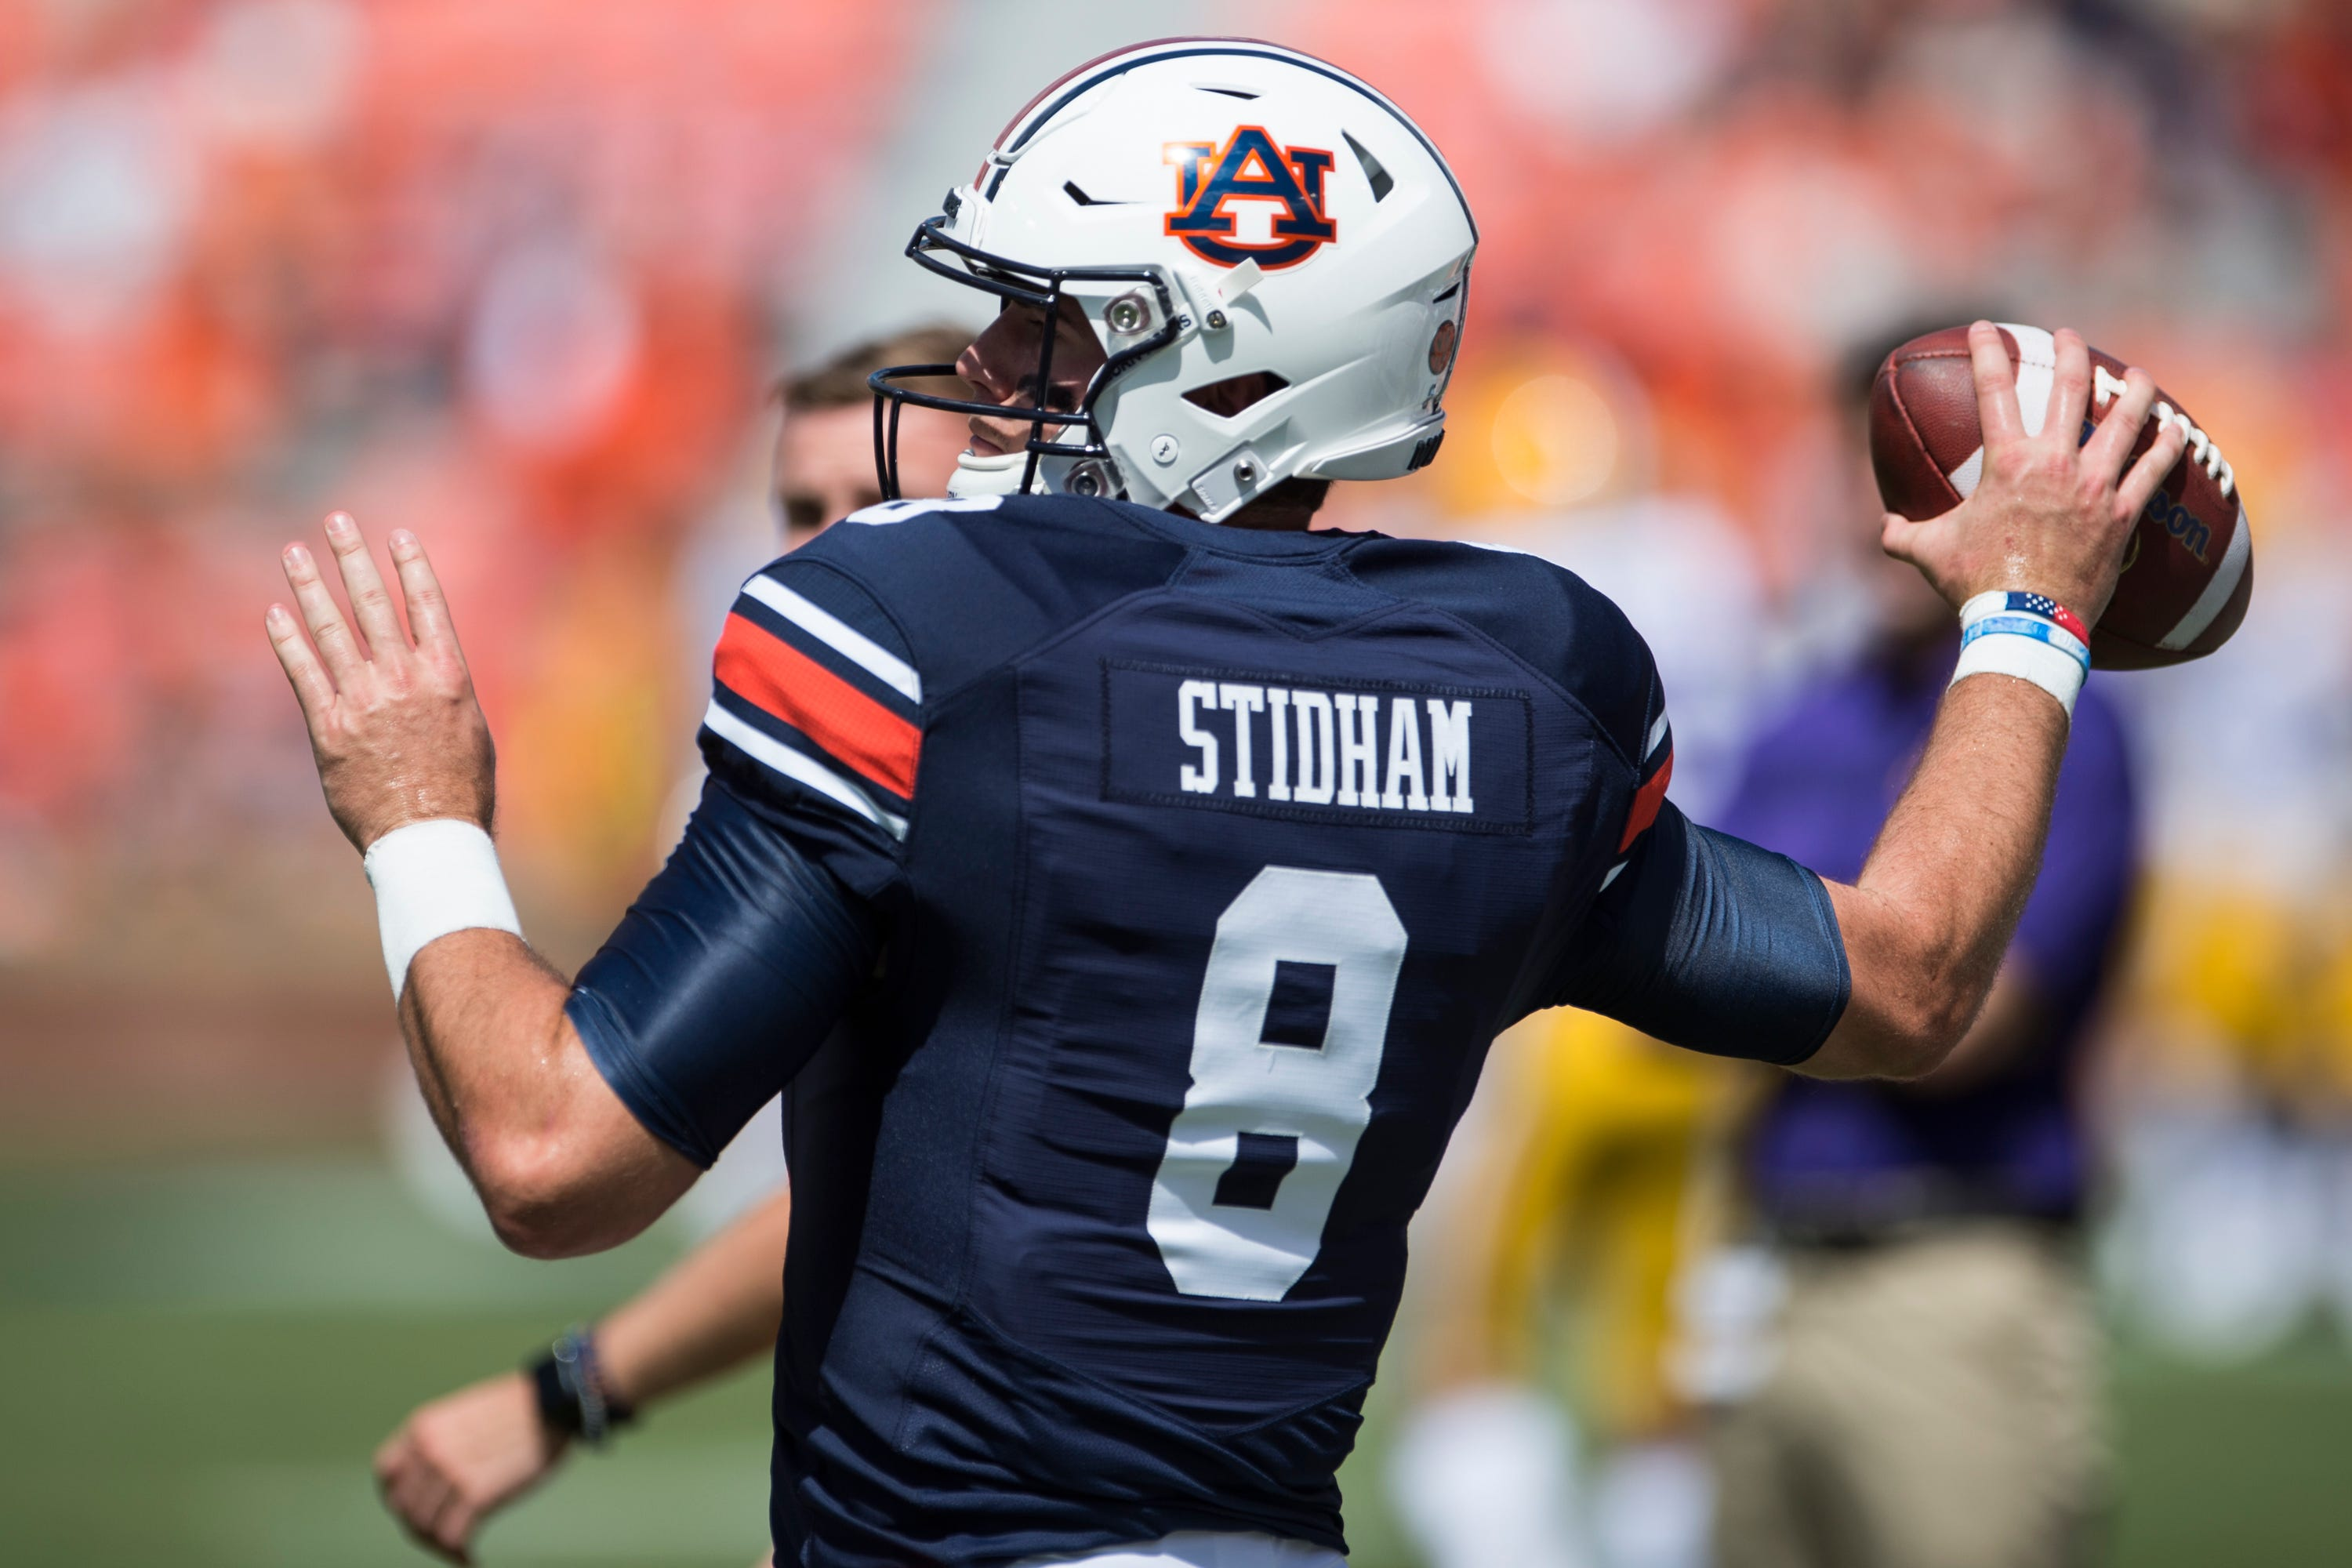 Auburn Football | Live Stream, TV schedule, Auburn Tigers ...